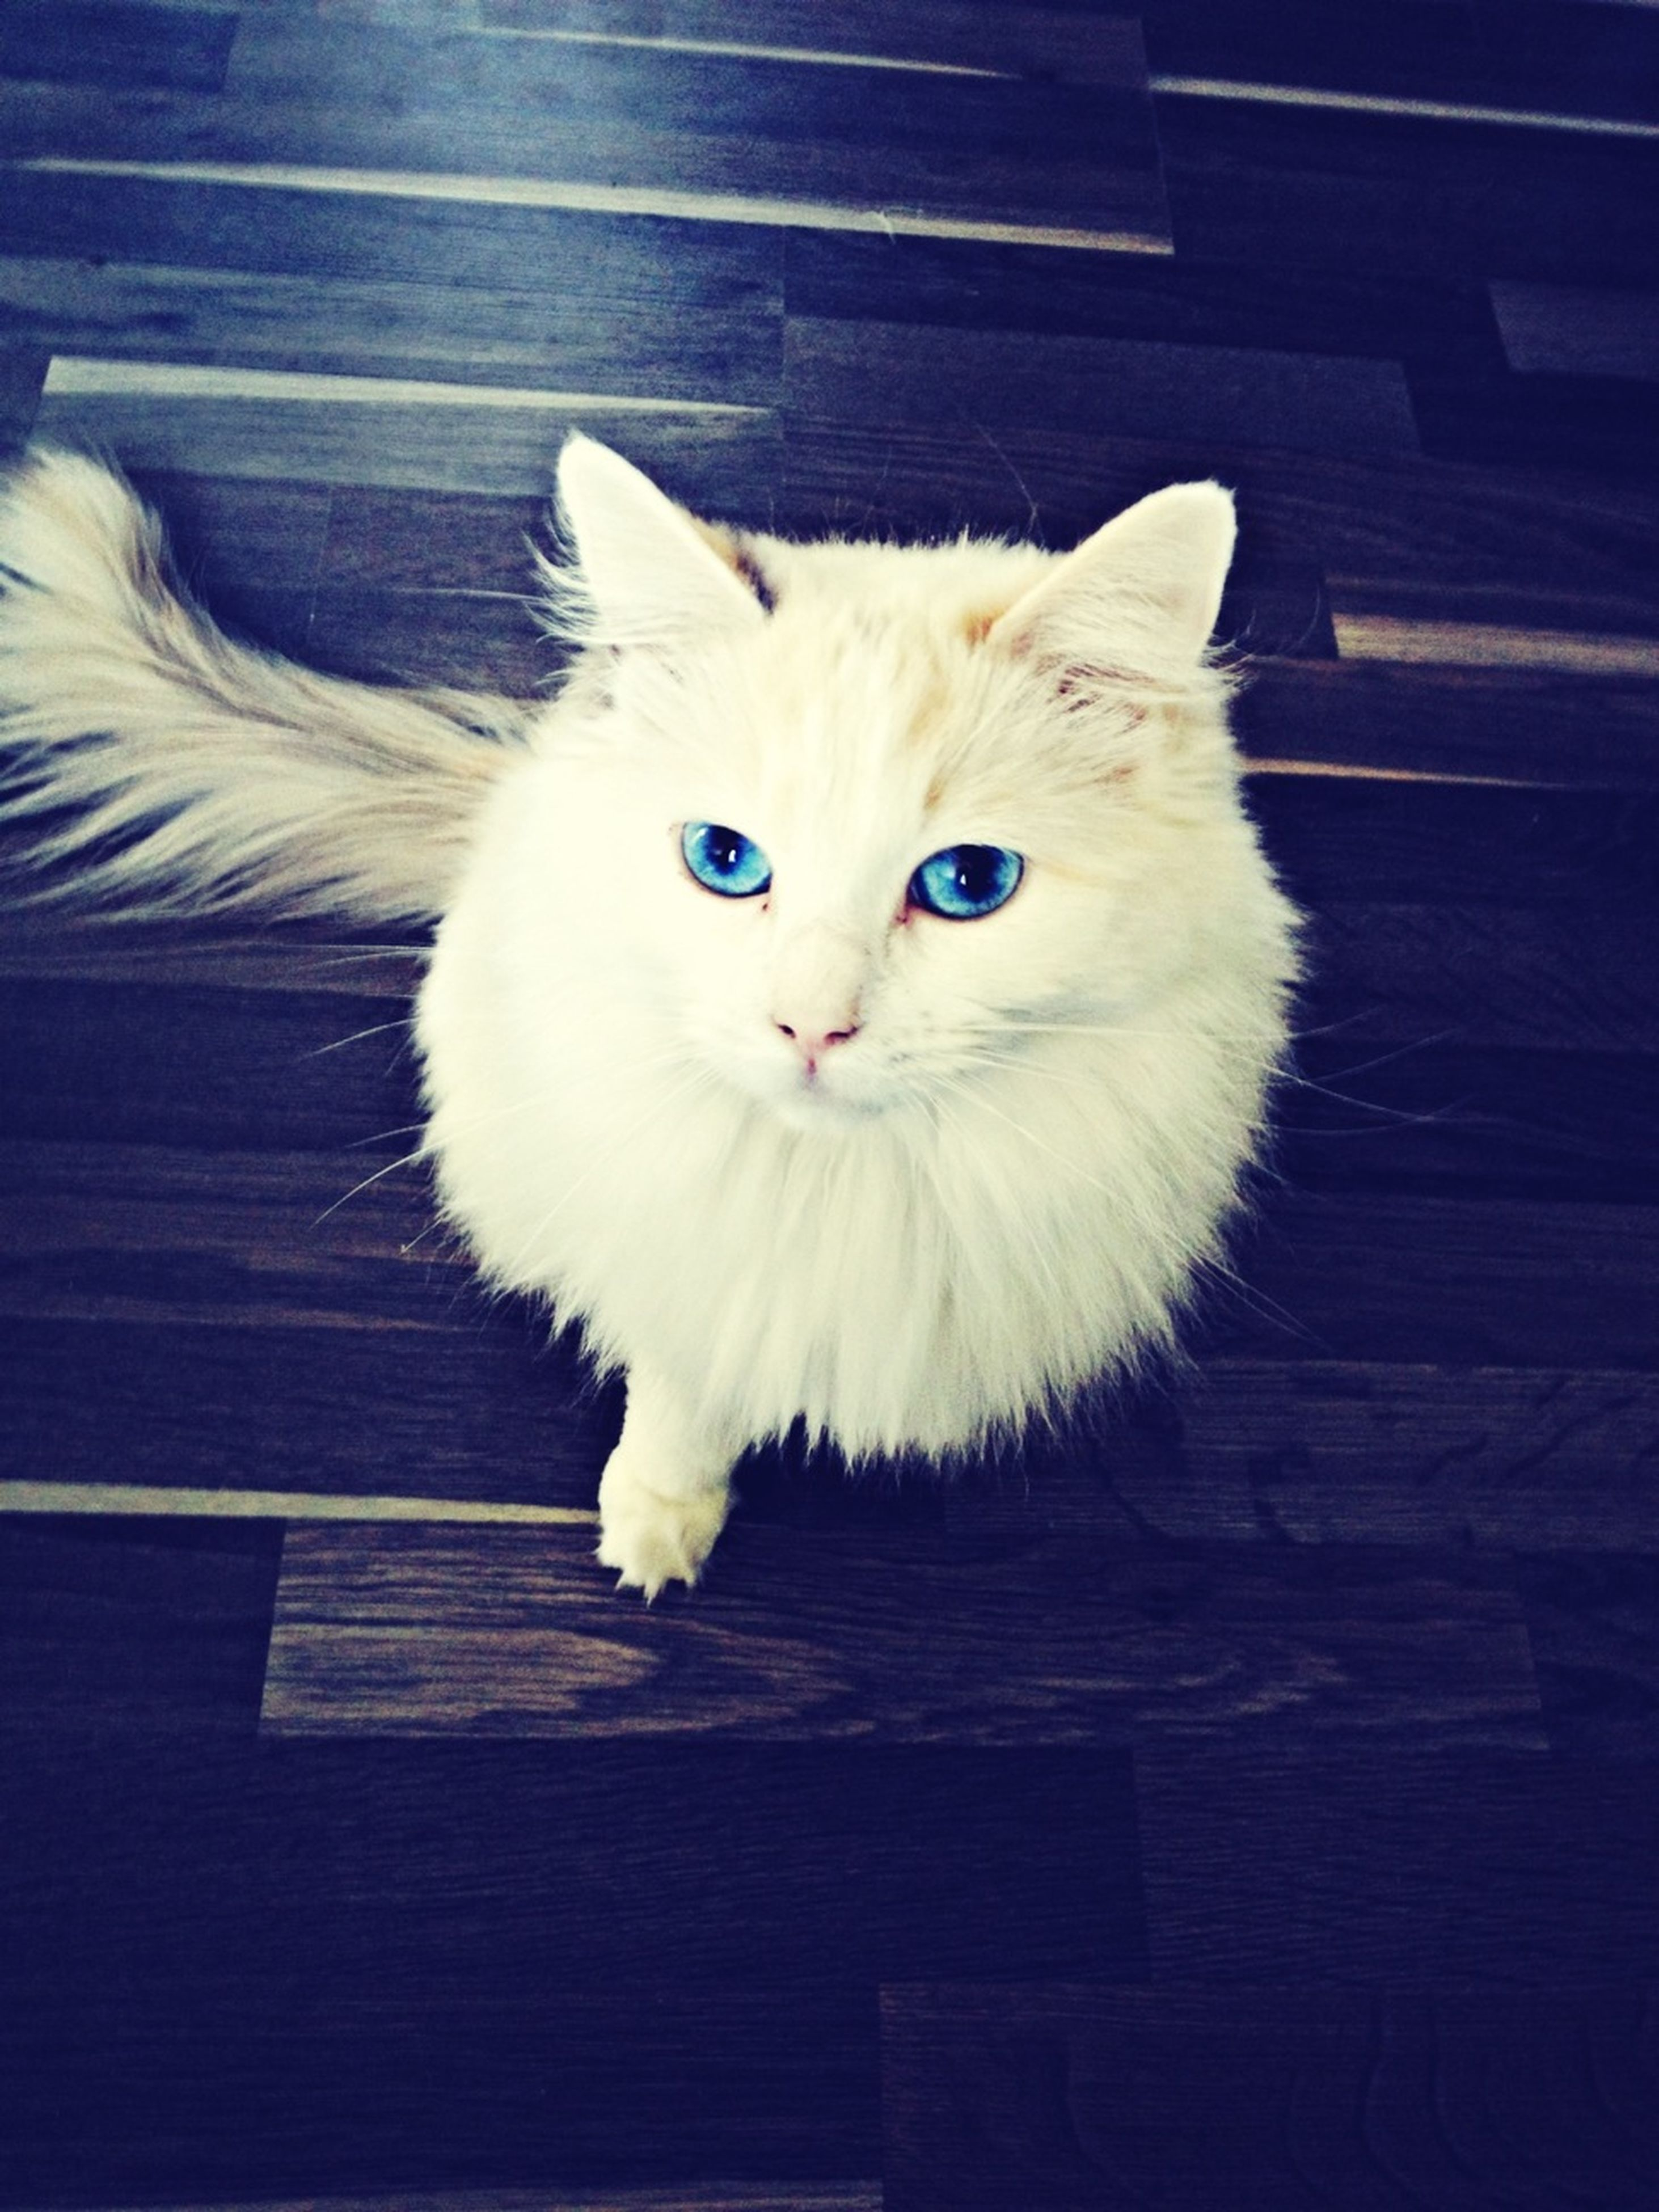 domestic cat, cat, pets, animal themes, domestic animals, one animal, feline, indoors, whisker, looking at camera, portrait, mammal, white color, sitting, close-up, relaxation, alertness, front view, flooring, high angle view